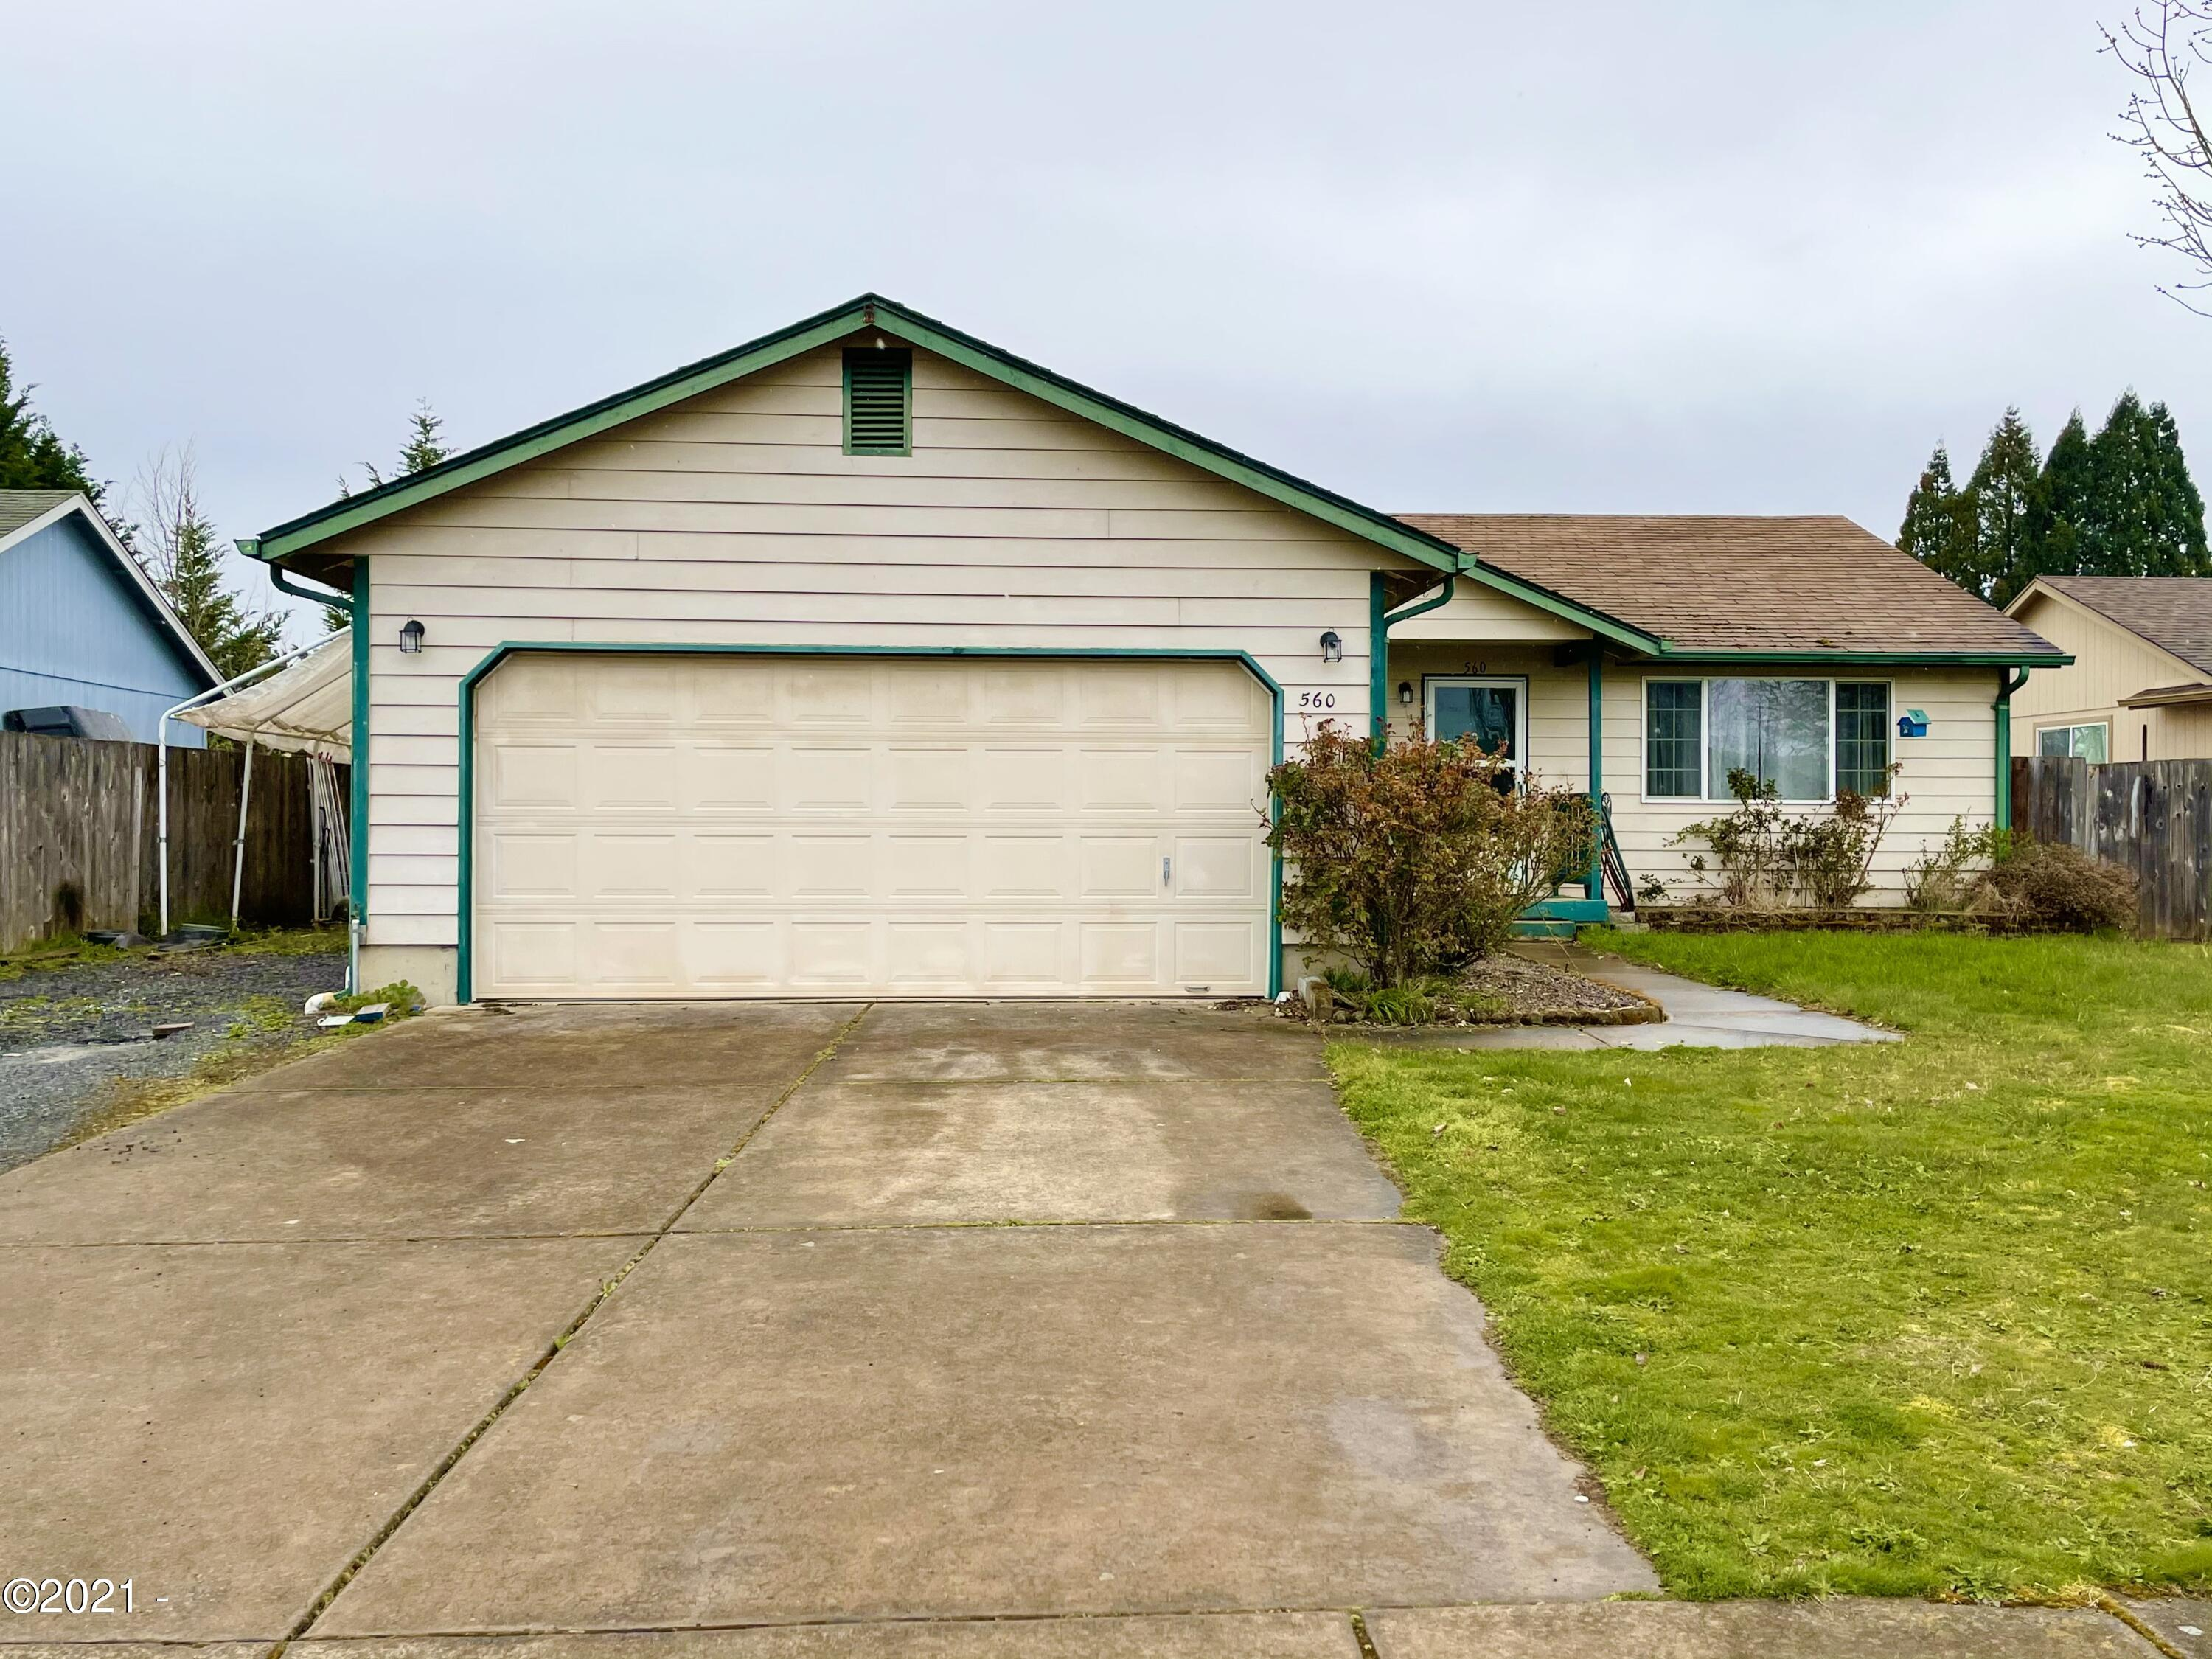 560 Mccall Way, Philomath, OR 97370 - 560 McCall Way - Welcome Home